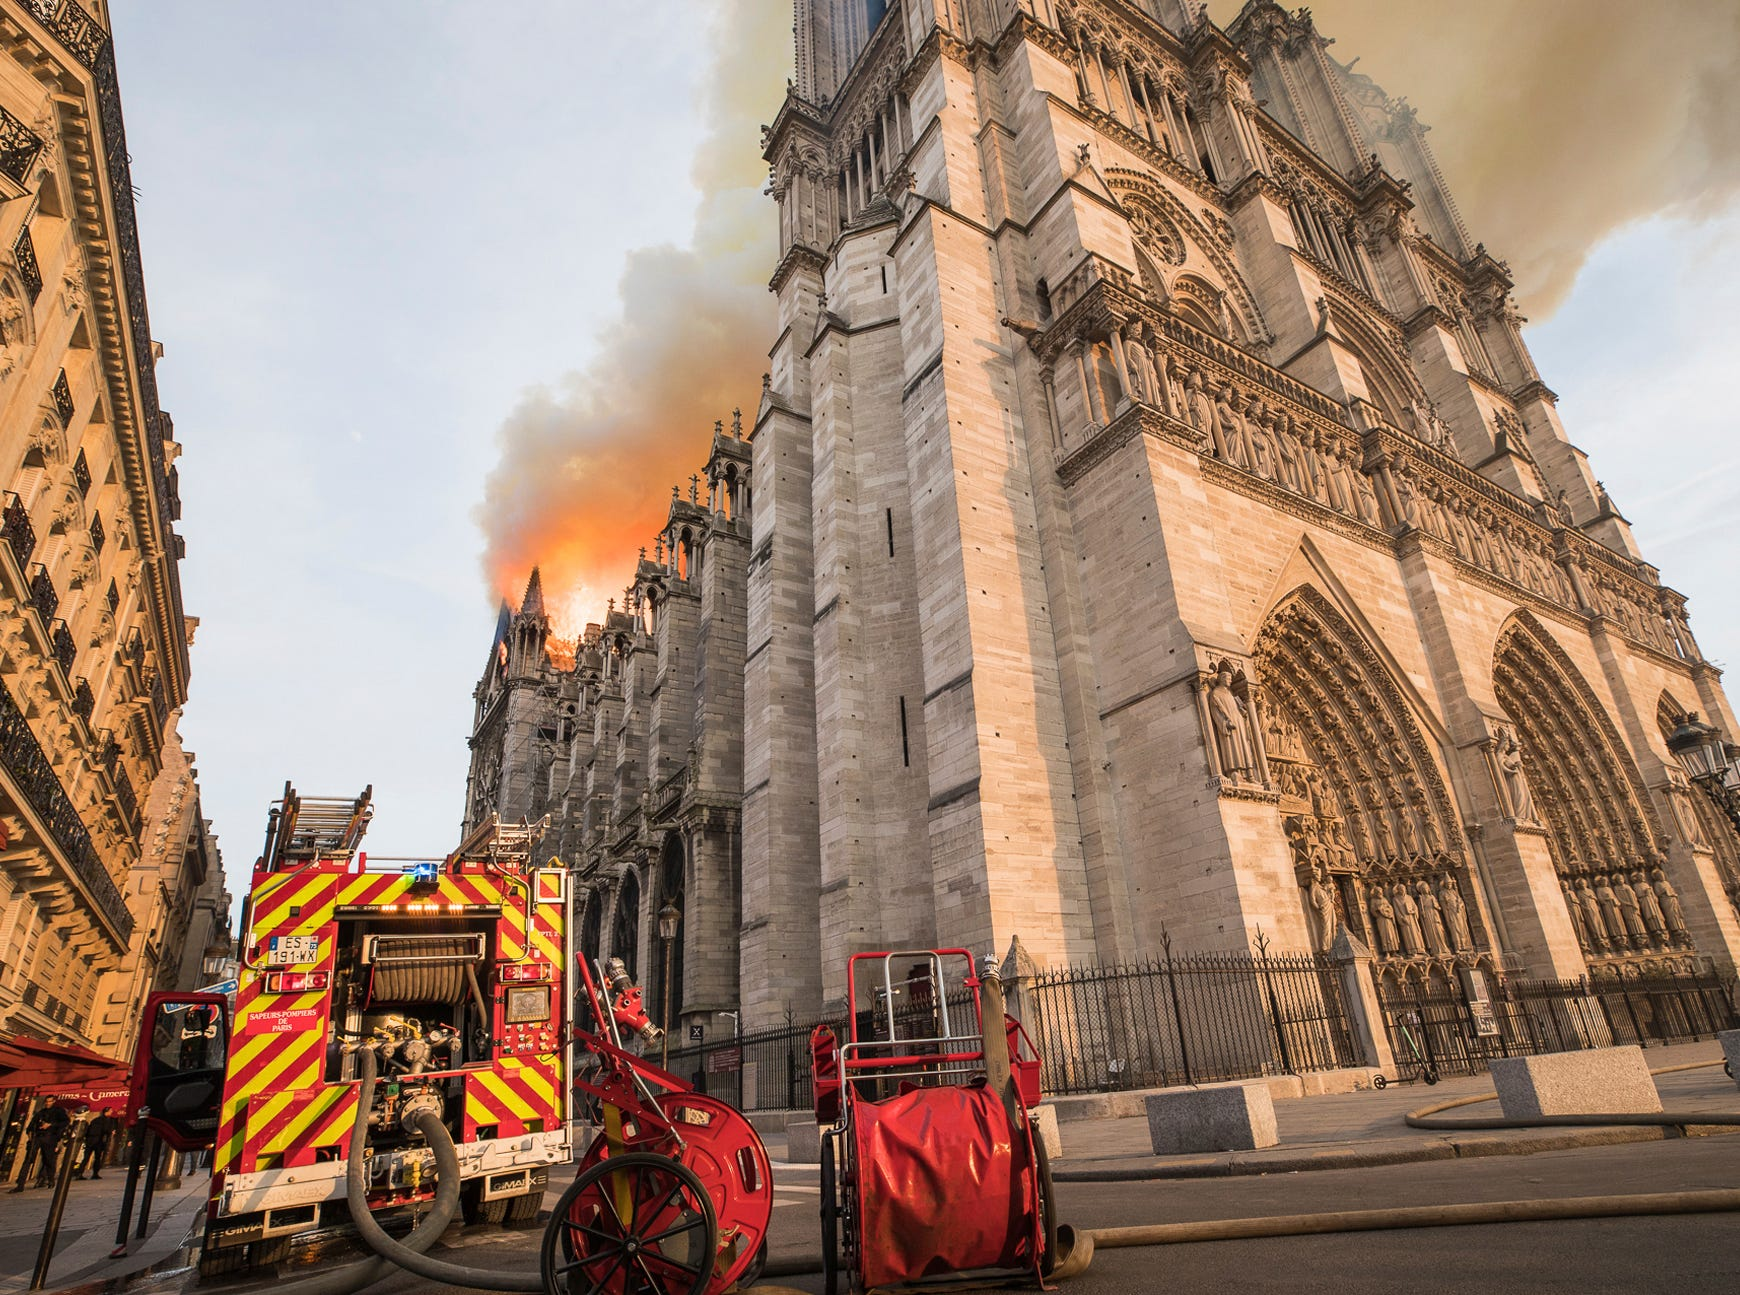 This photo provided Tuesday April 16, 2019 by the Paris Fire Brigade shows a fire brigade truck parked by the burning Notre Dame cathedral, Monday April 15, 2019. Experts assessed the blackened shell of Paris' iconic Notre Dame Tuesday morning to establish next steps to save what remains after a devastating fire destroyed much of the cathedral that had survived almost 900 years of history. (Benoit Moser, BSPP via AP)